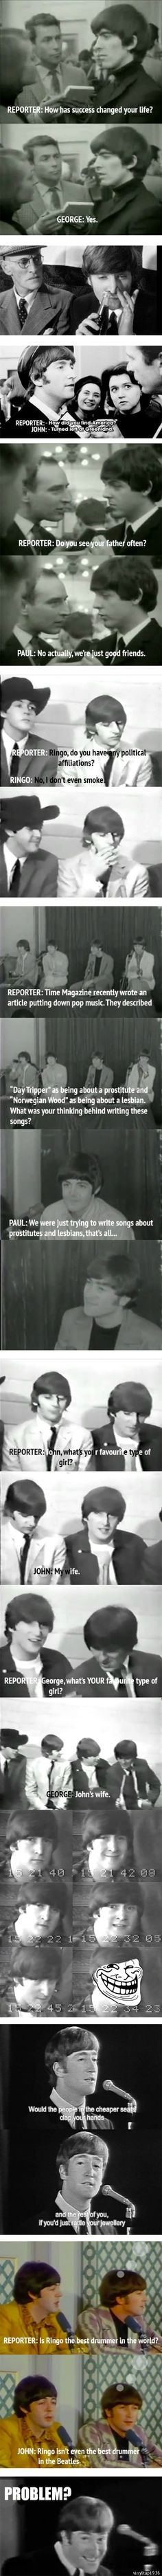 The Beatles, ladies and gentlemen.